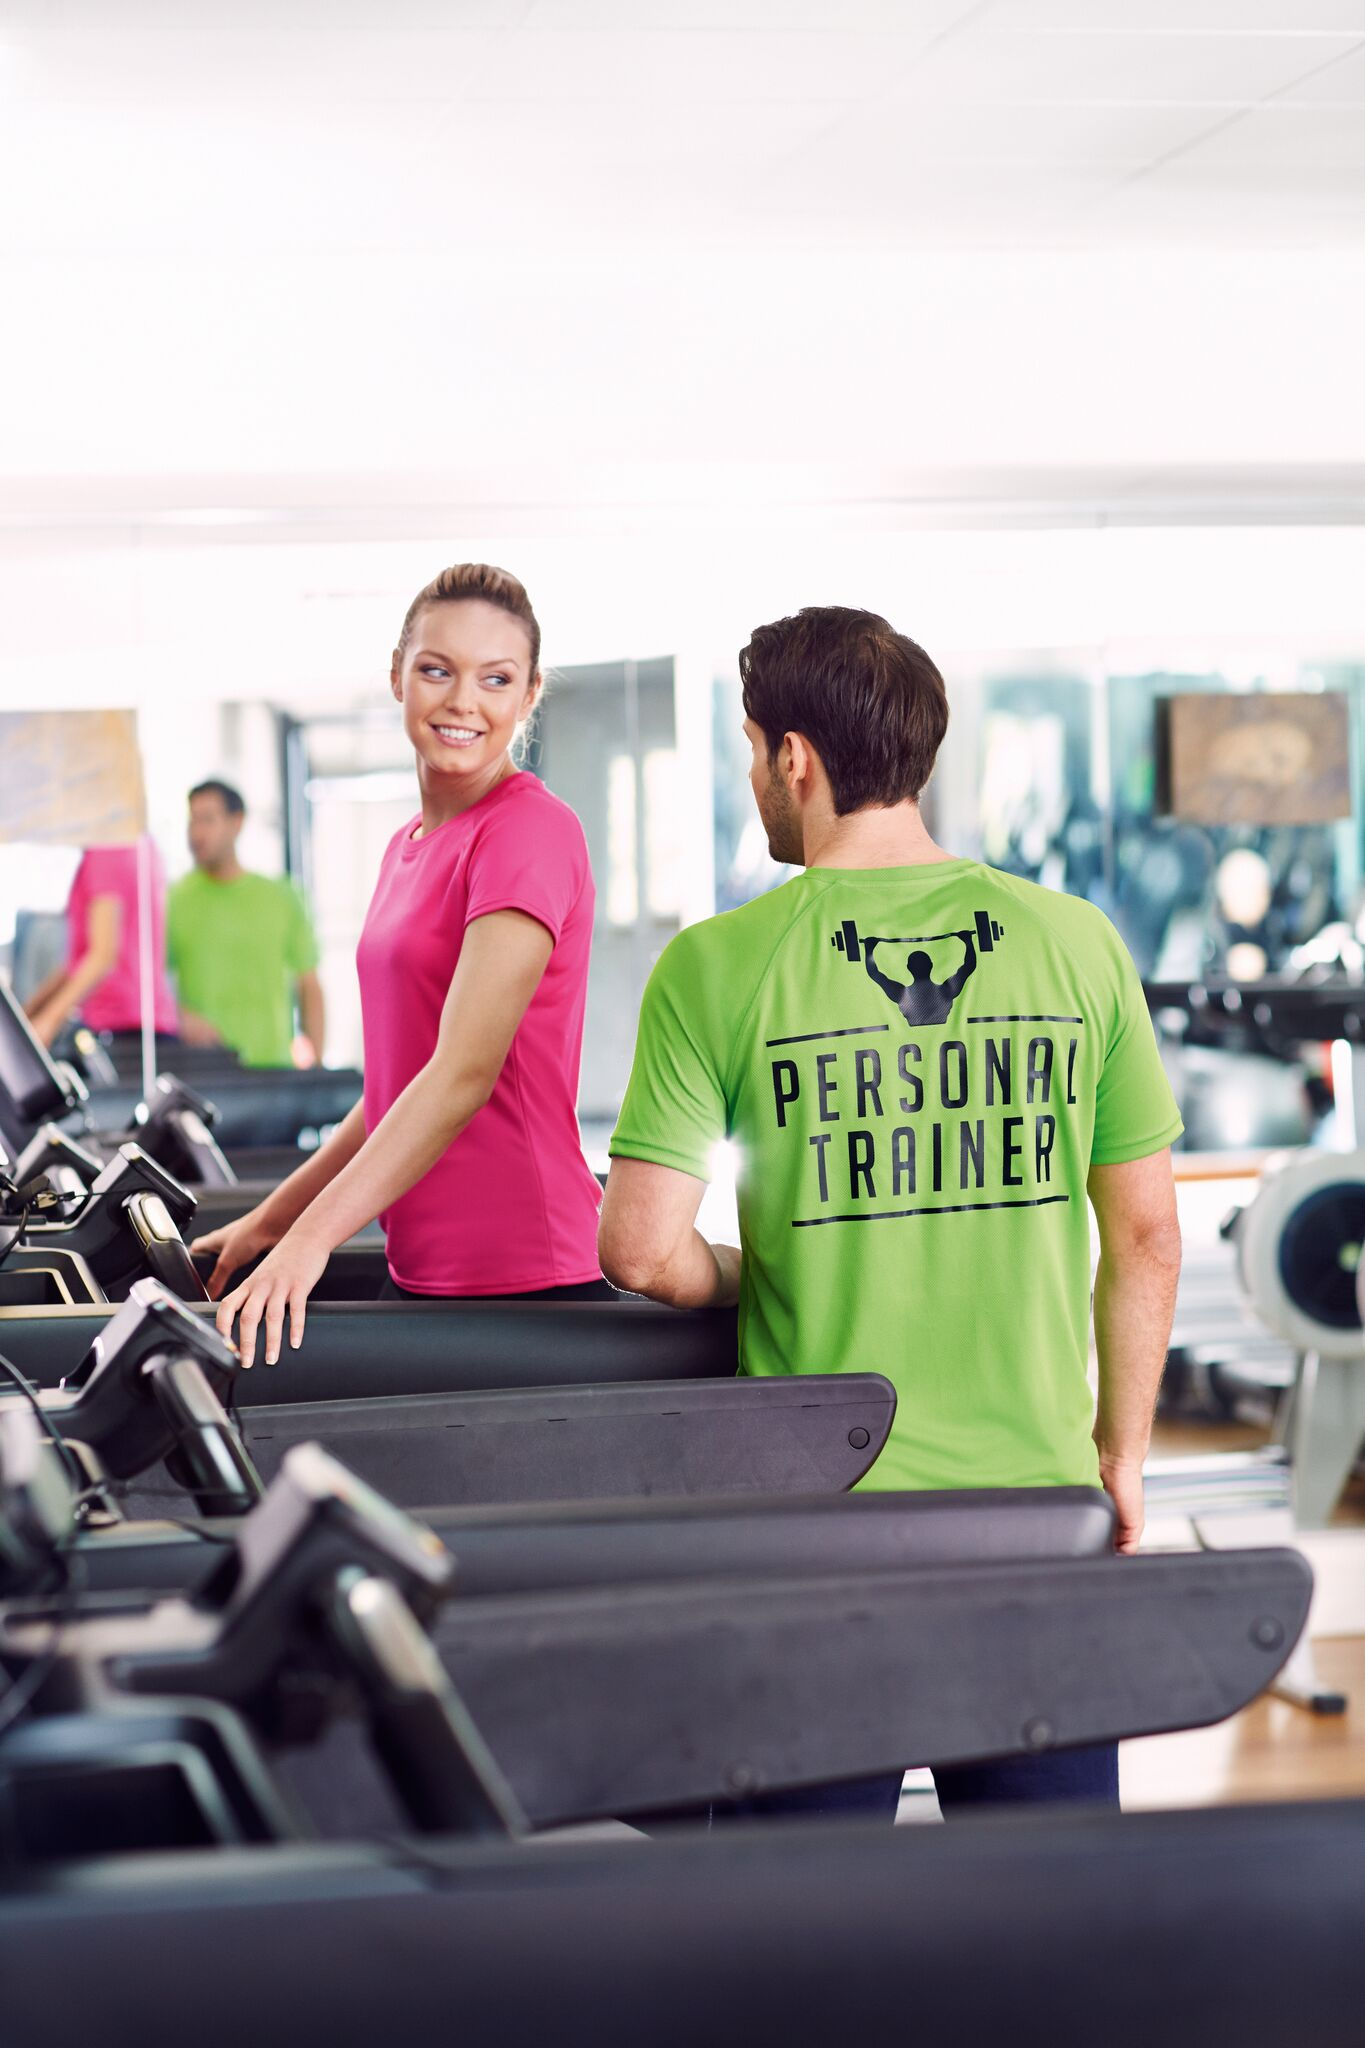 Personal Trainer Clothing